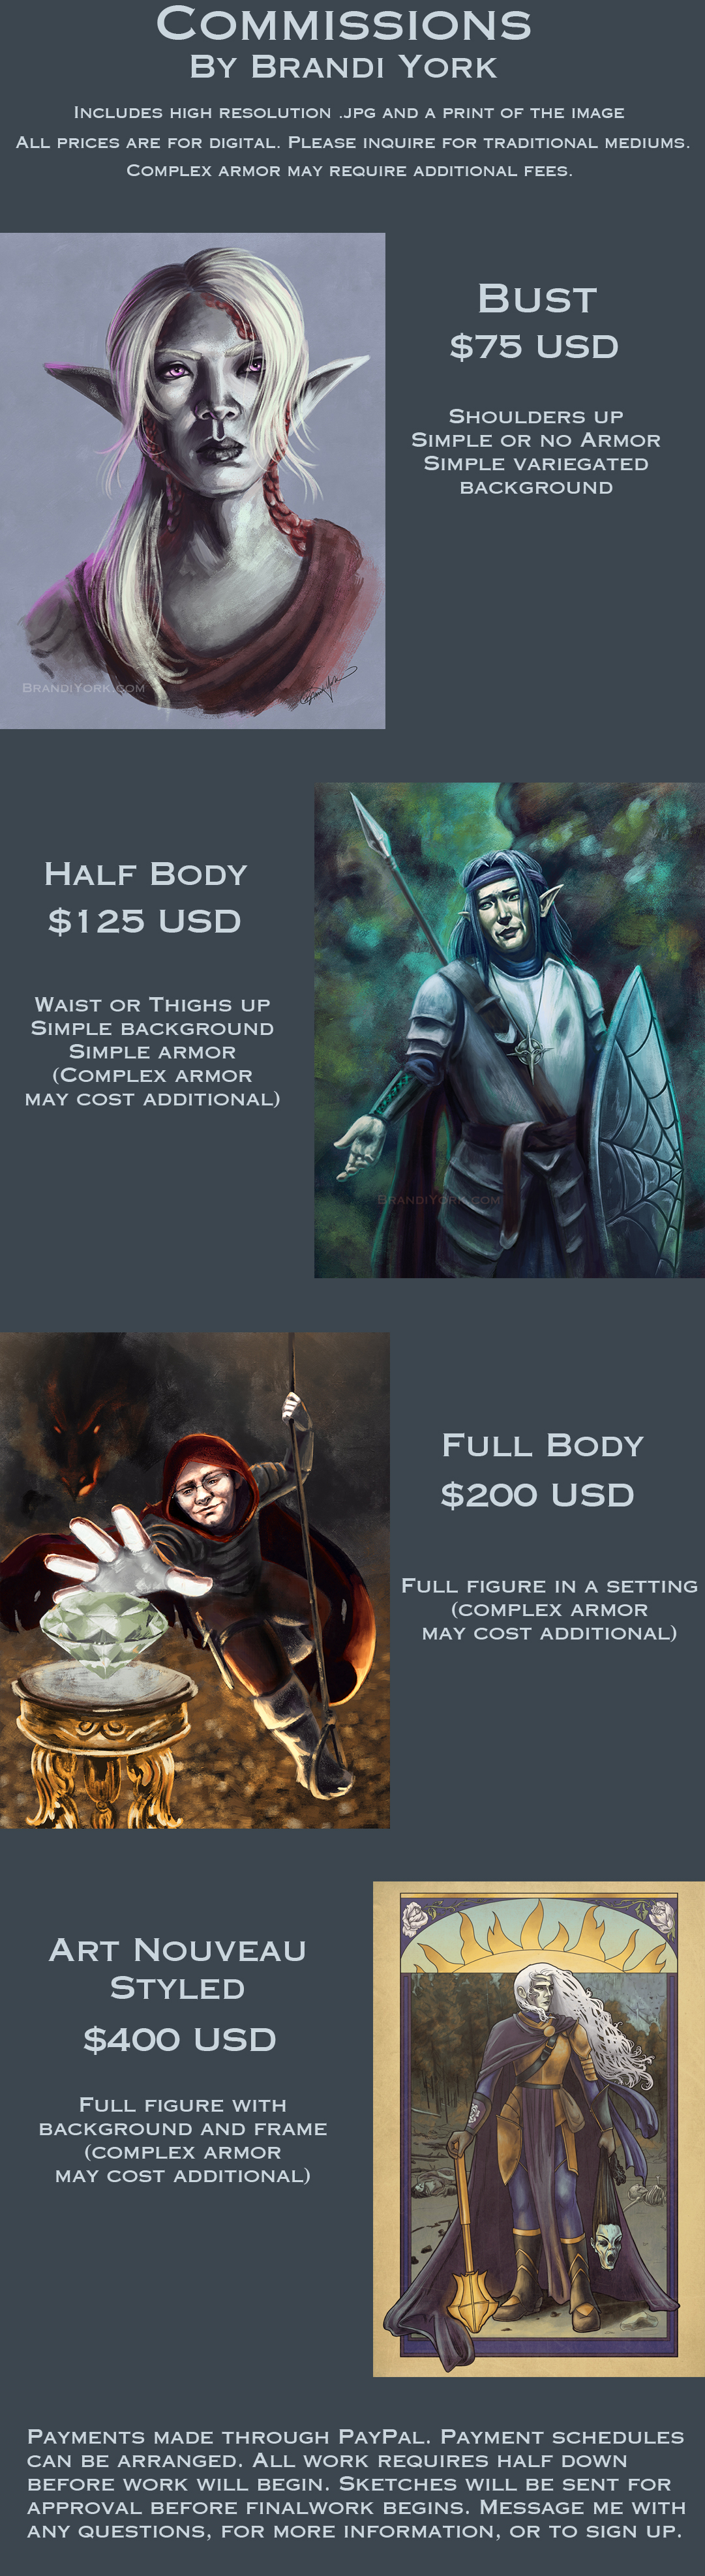 commission pricing